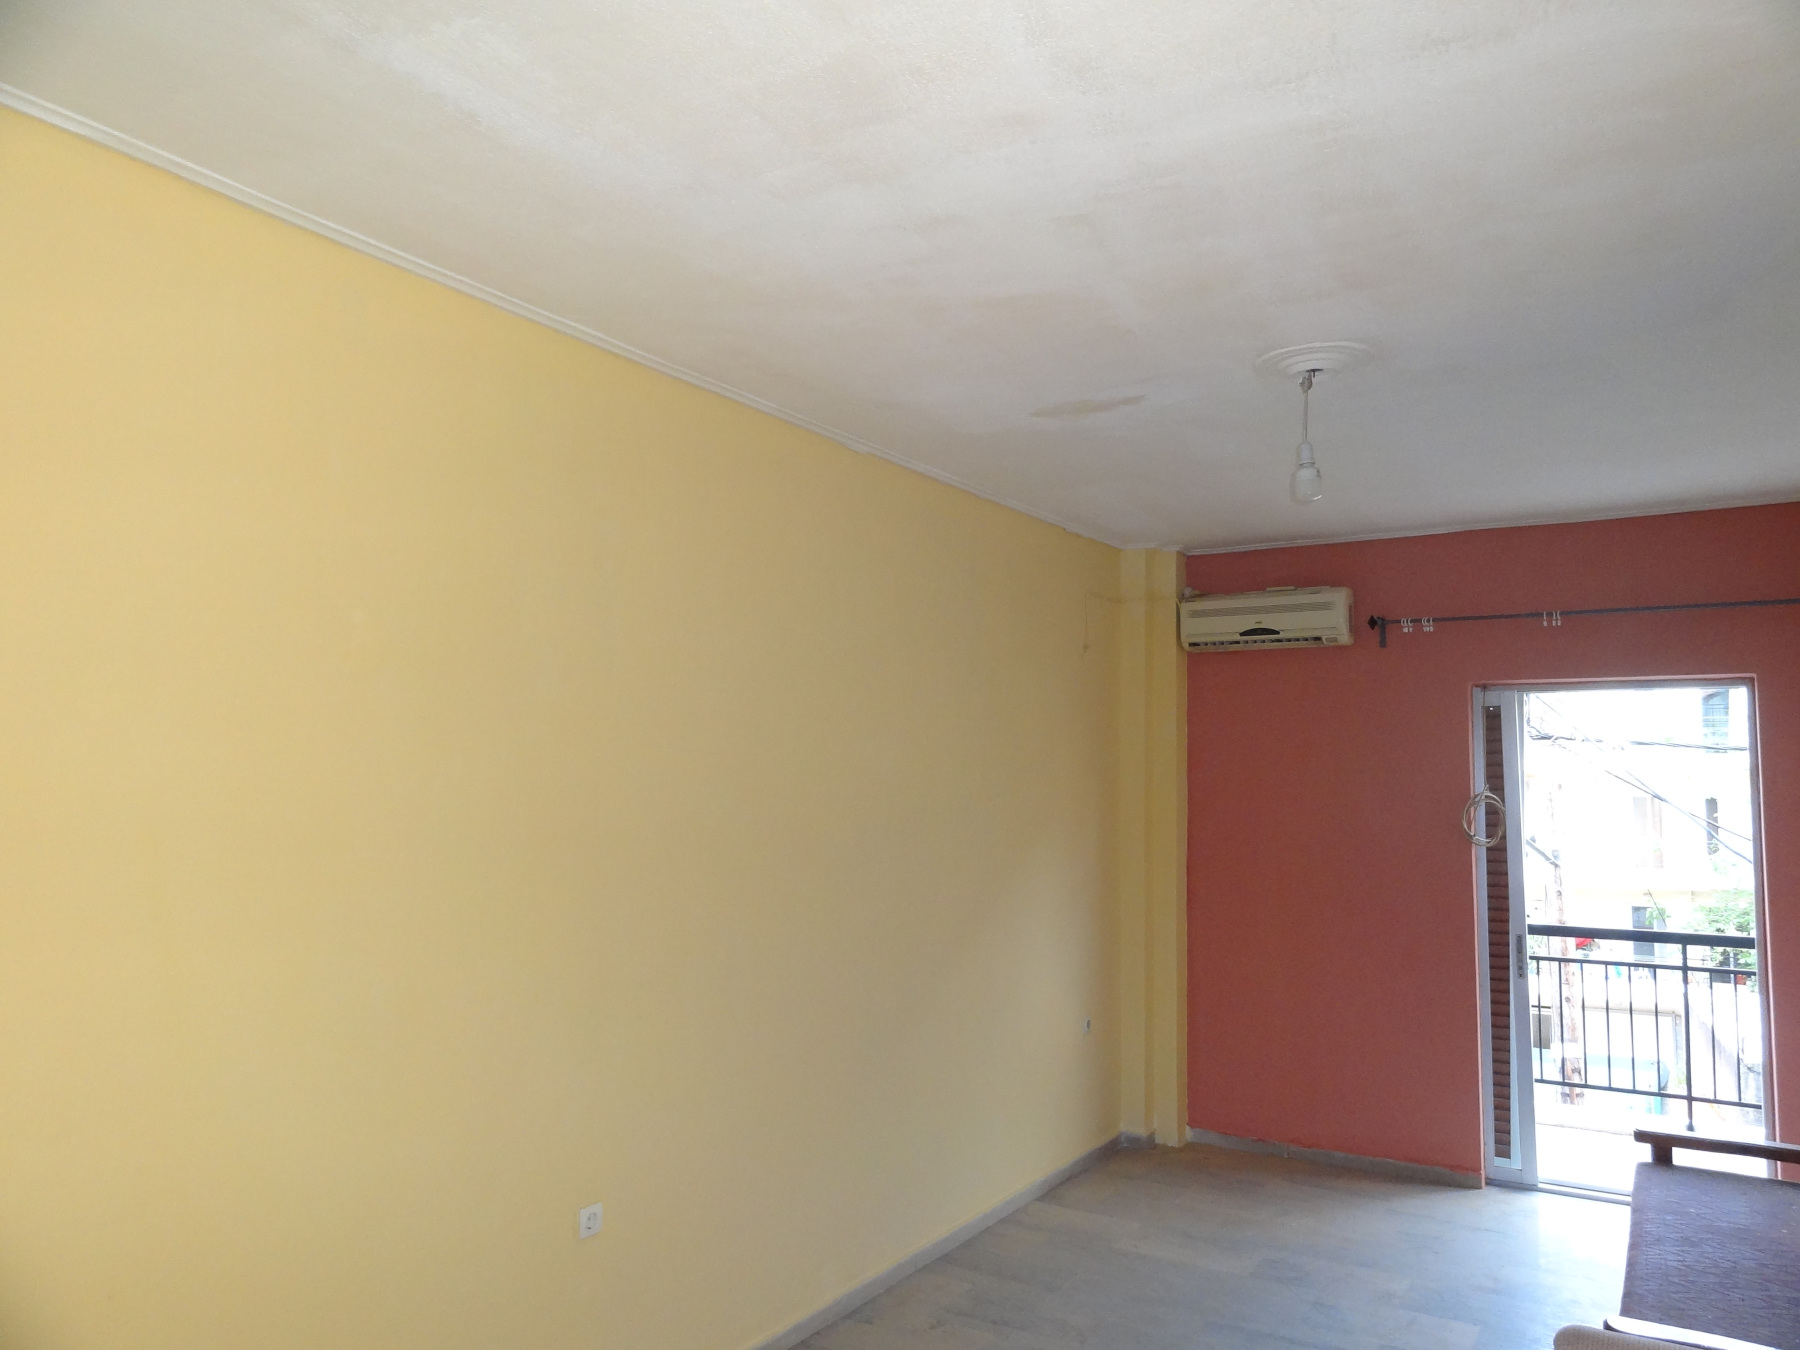 For sale bright 2 bedrooms apartment of 70 sq.m. 2nd floor in Kaloutsiani in Ioannina